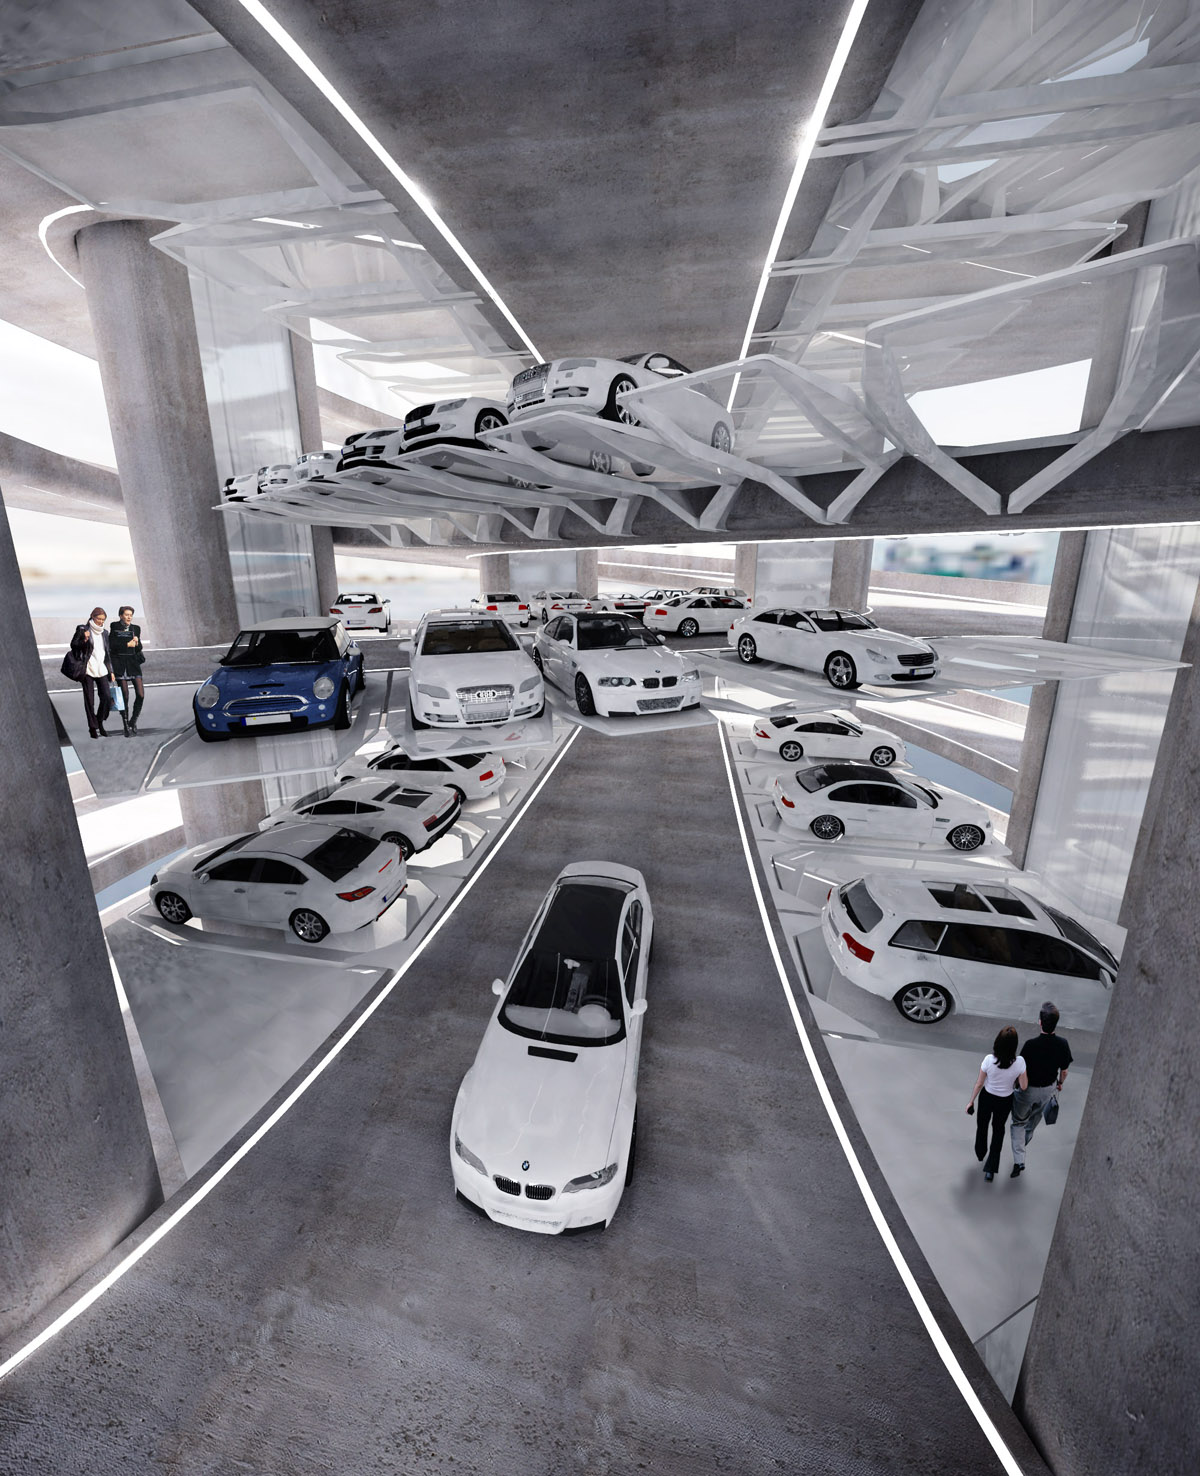 Design of car parking - Two Spiral Ramps Forms A Dna Shape Provide Spaces In Between Both For Car Parking And Car Exhibition The Dna Spiral Leaves Six Hollows Running Through All